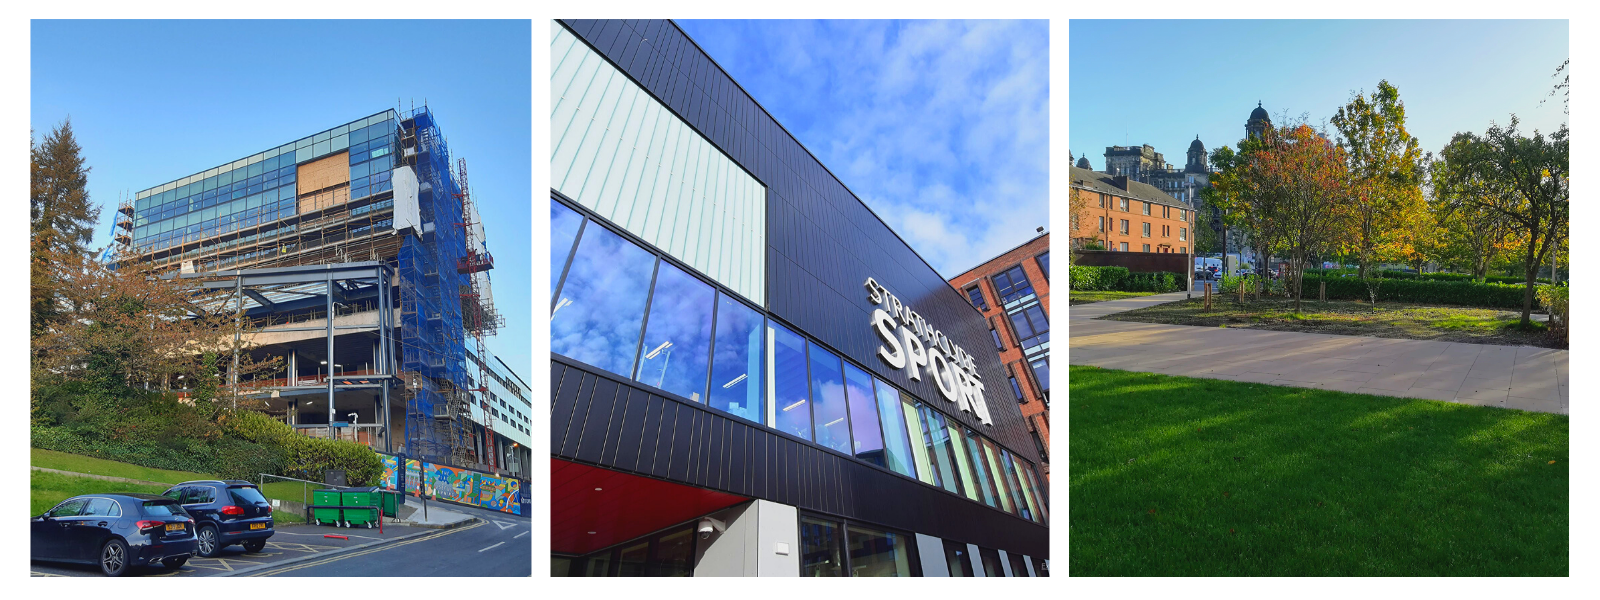 Learning and Teaching Building, Strathclyde Sport, Thrive Gardens